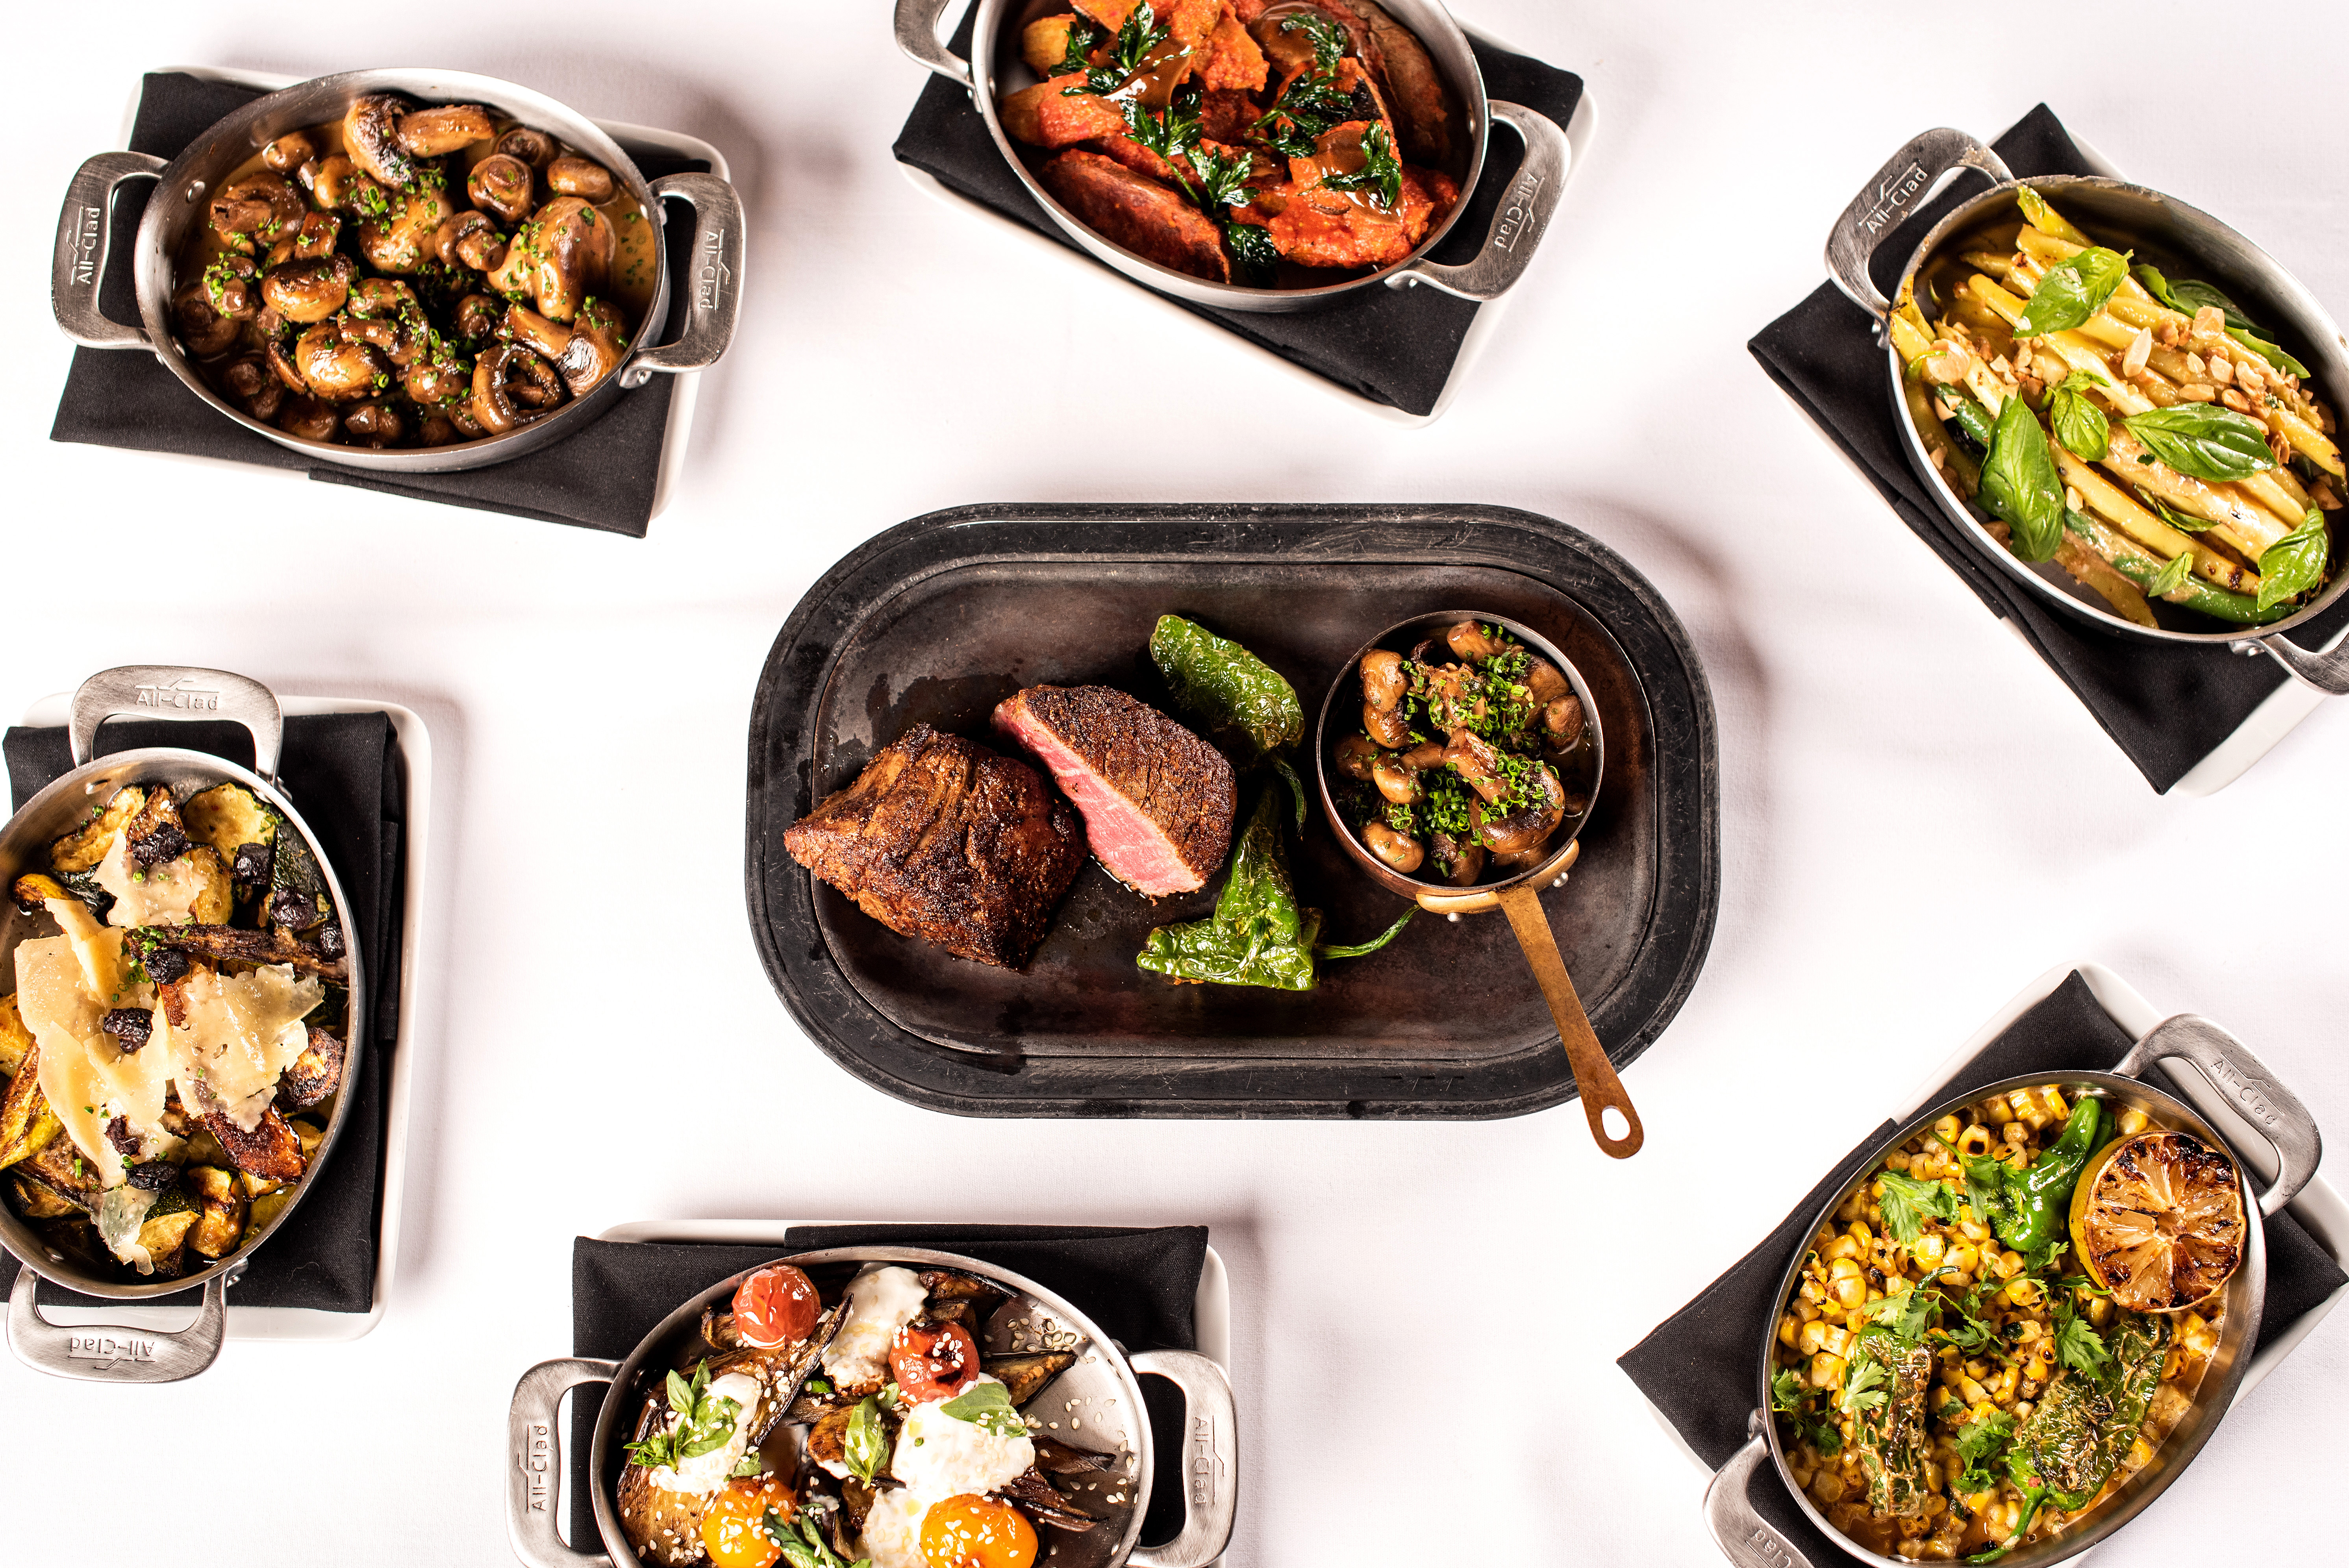 Pictured dishes include summer pole beans with almond butter, patatas bravas, and of course, a steak